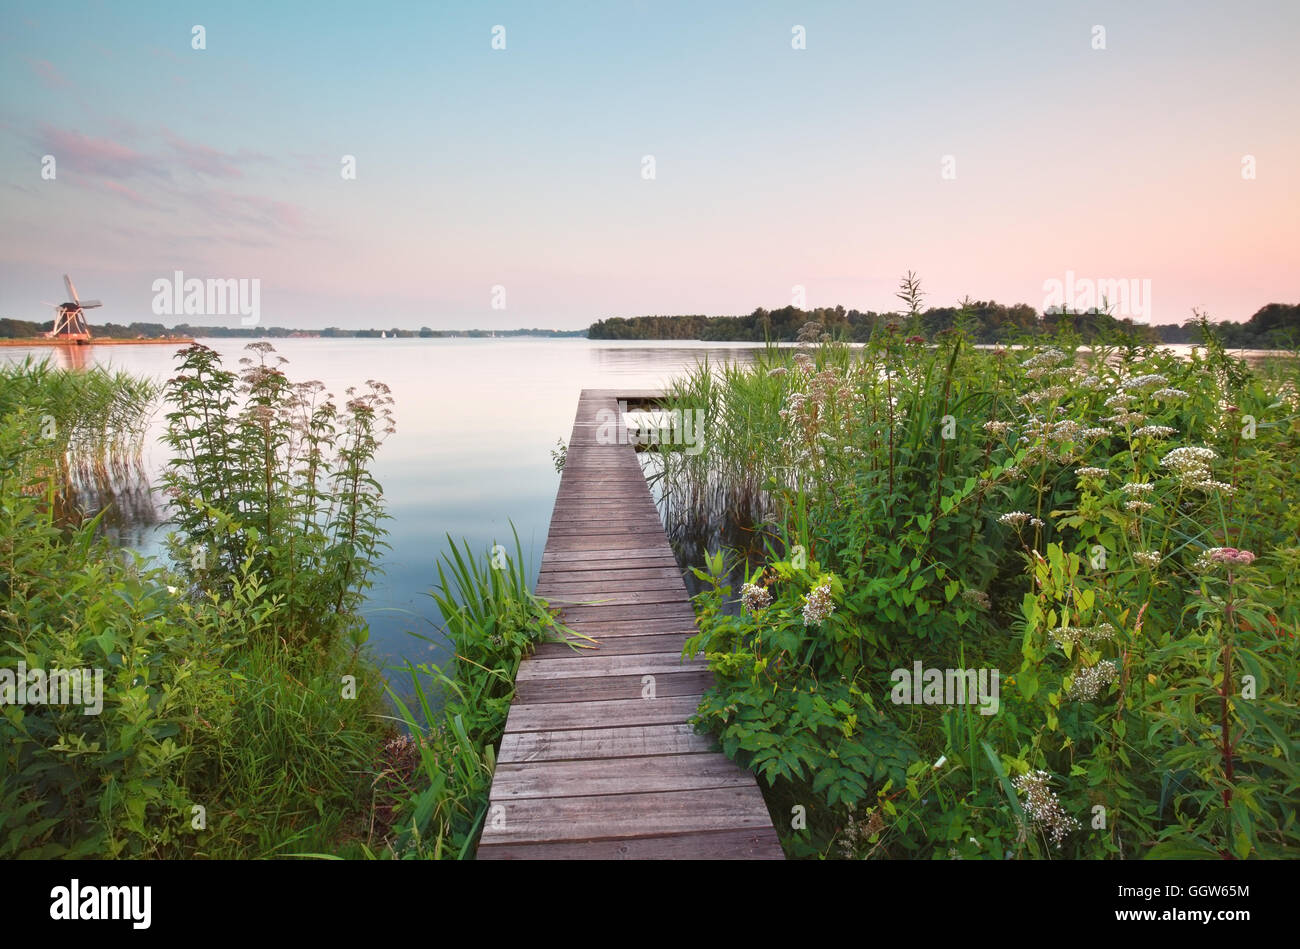 wooden pier on big lake in summer, Groningen, Netherlands - Stock Image